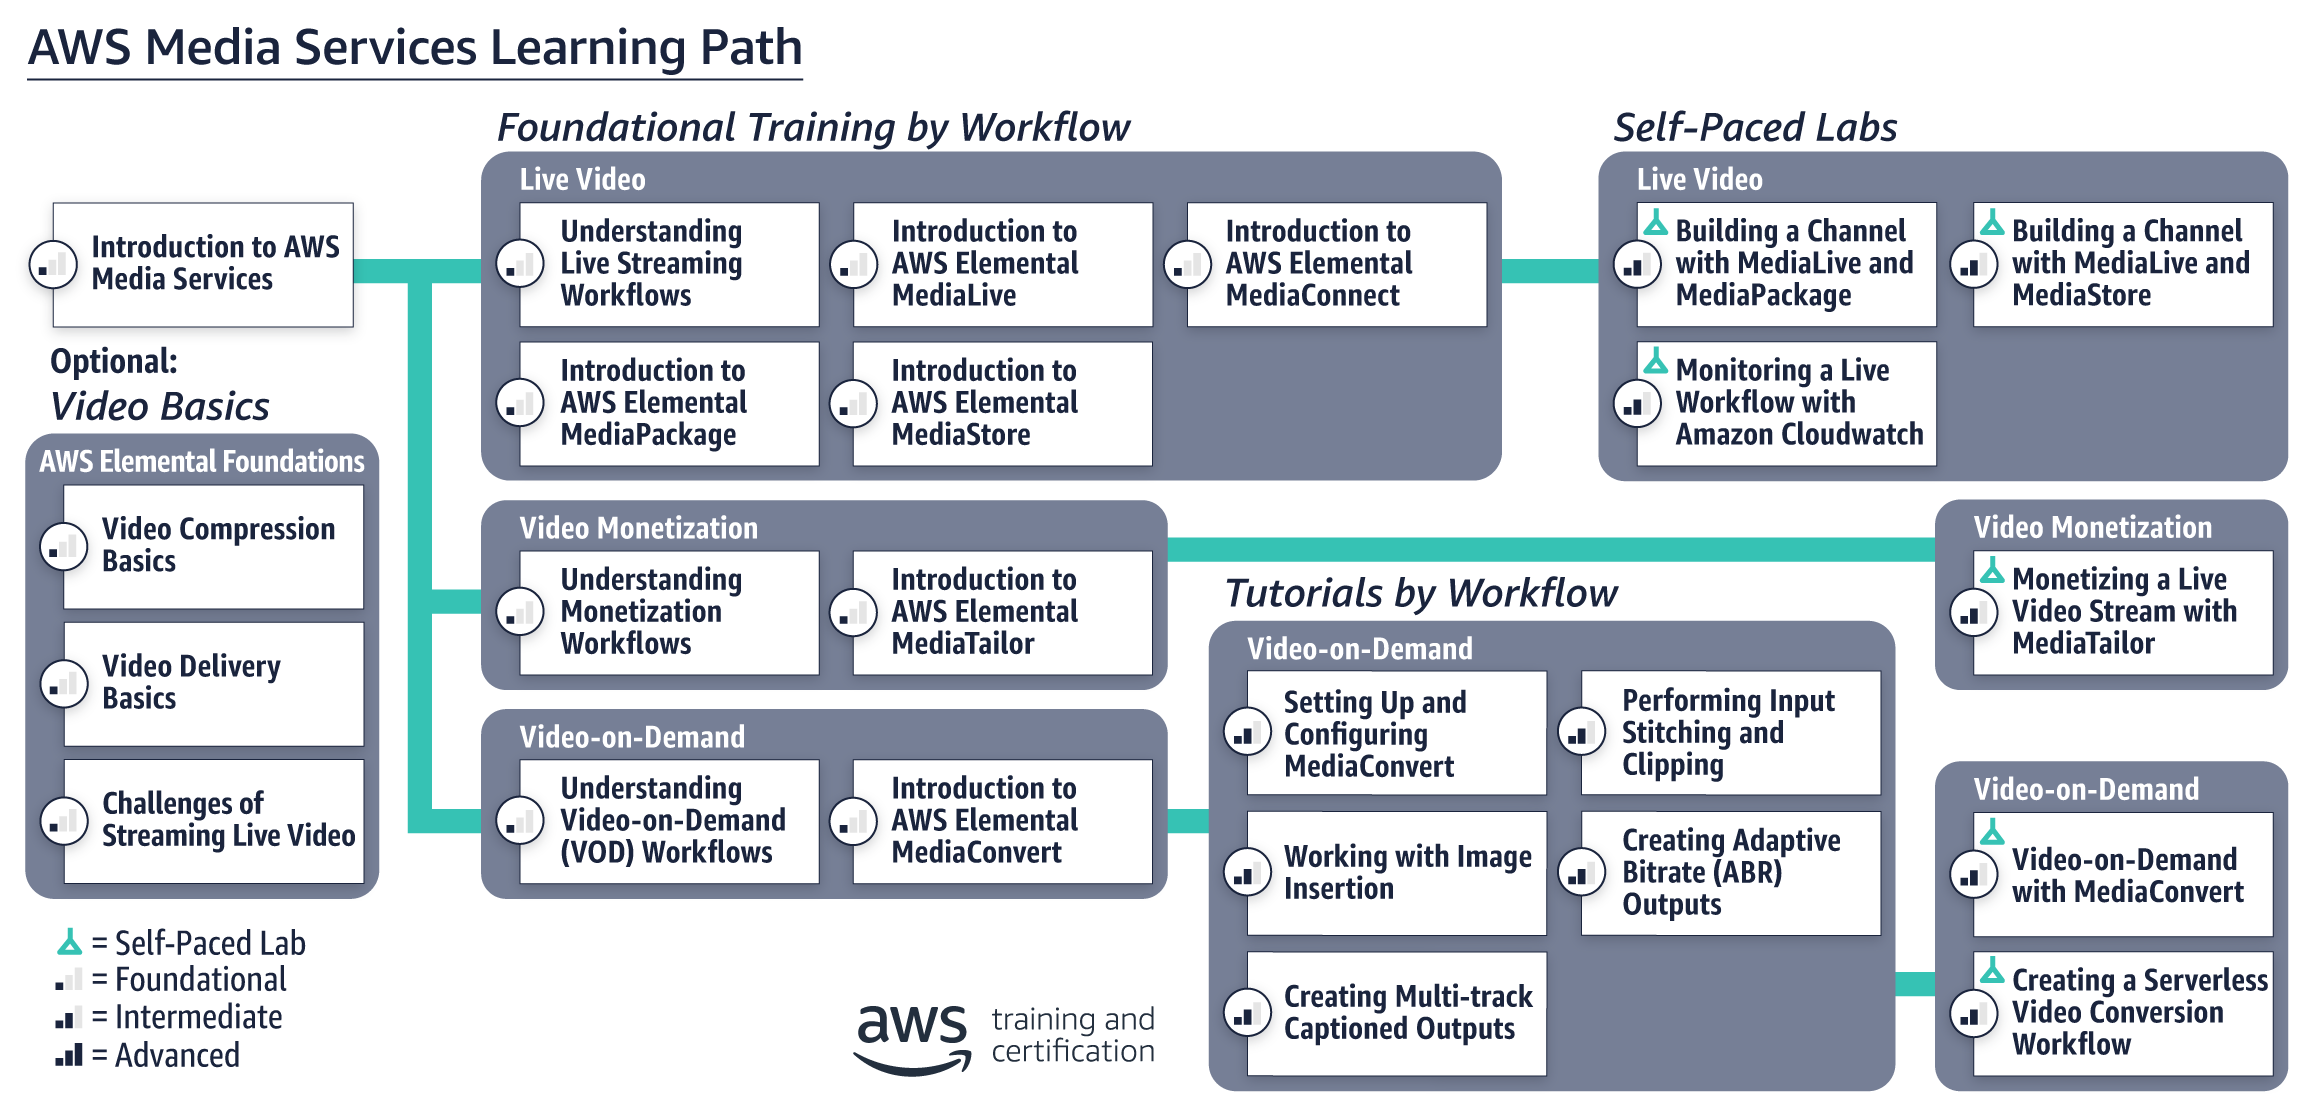 path_aws-media-services-v3.2.568a14dce5294a133db4eb0854cf4662c32c167f.png